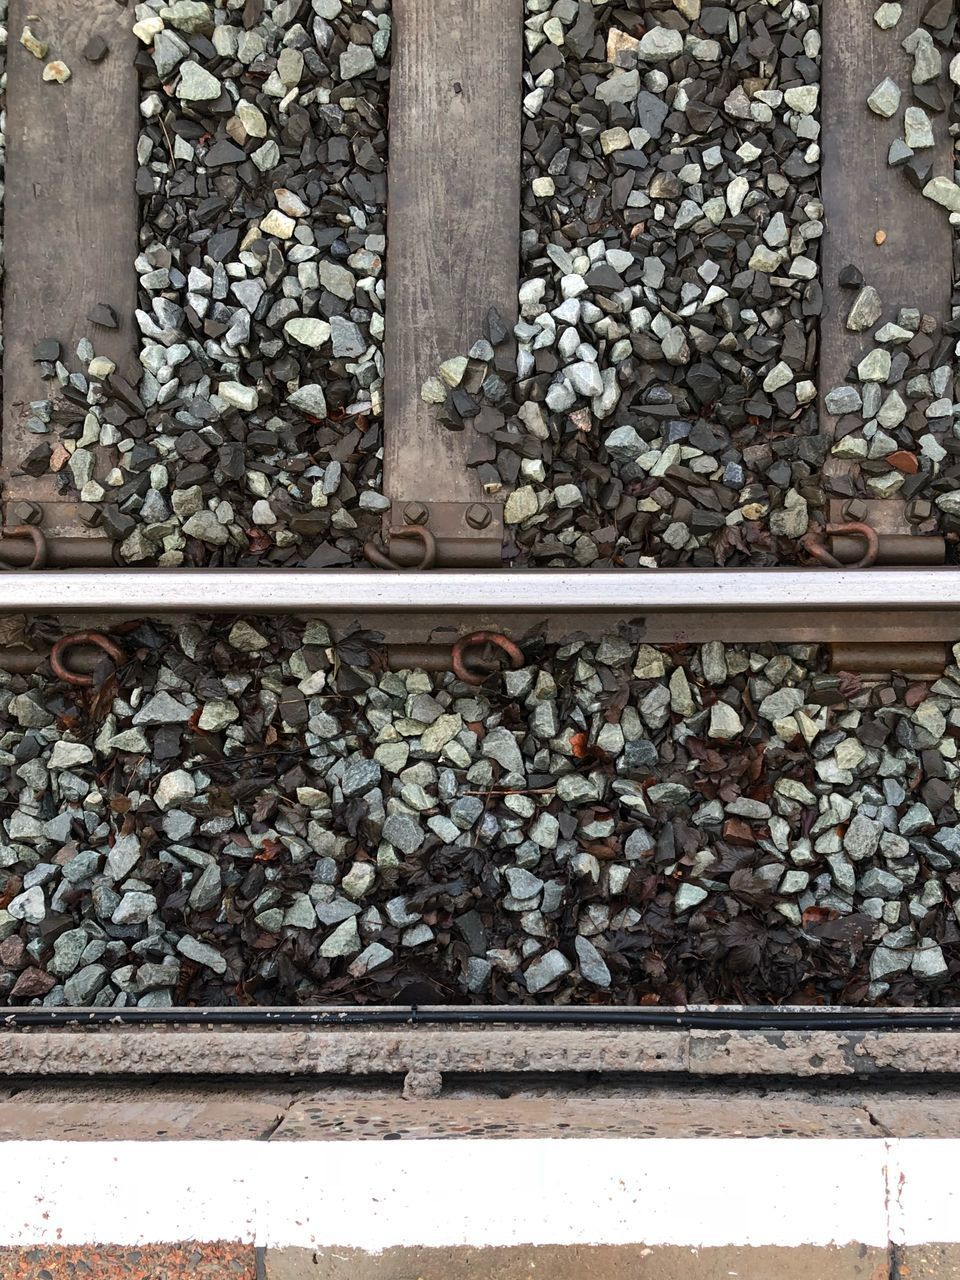 abundance, day, large group of objects, no people, railroad track, outdoors, pebble, railroad tie